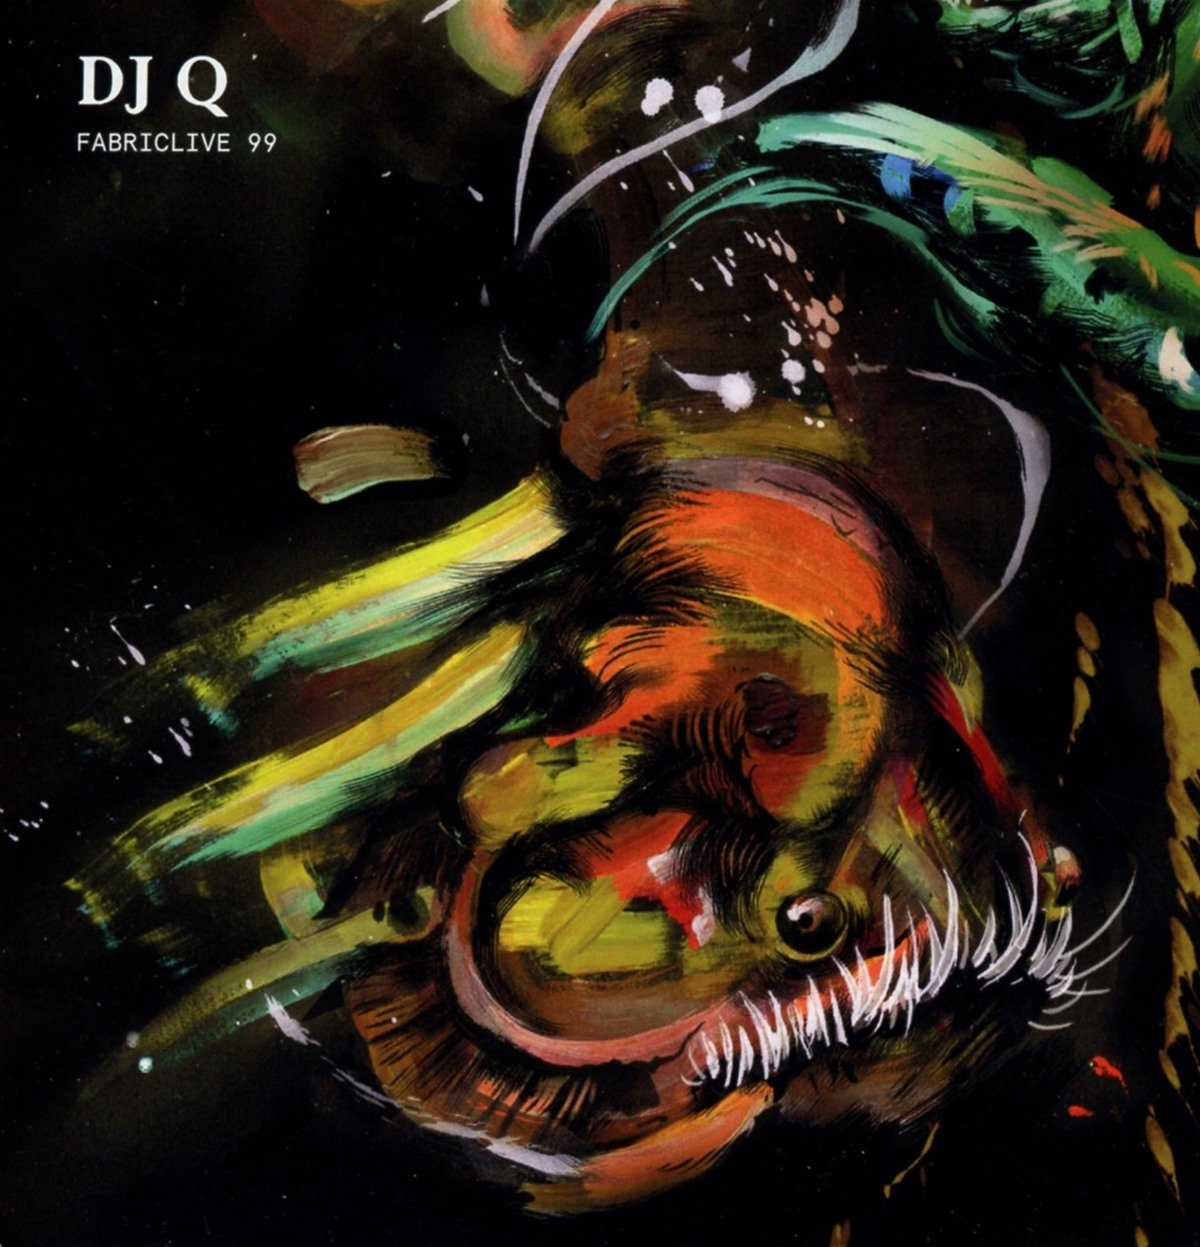 Fabriclive 99 by Fabric